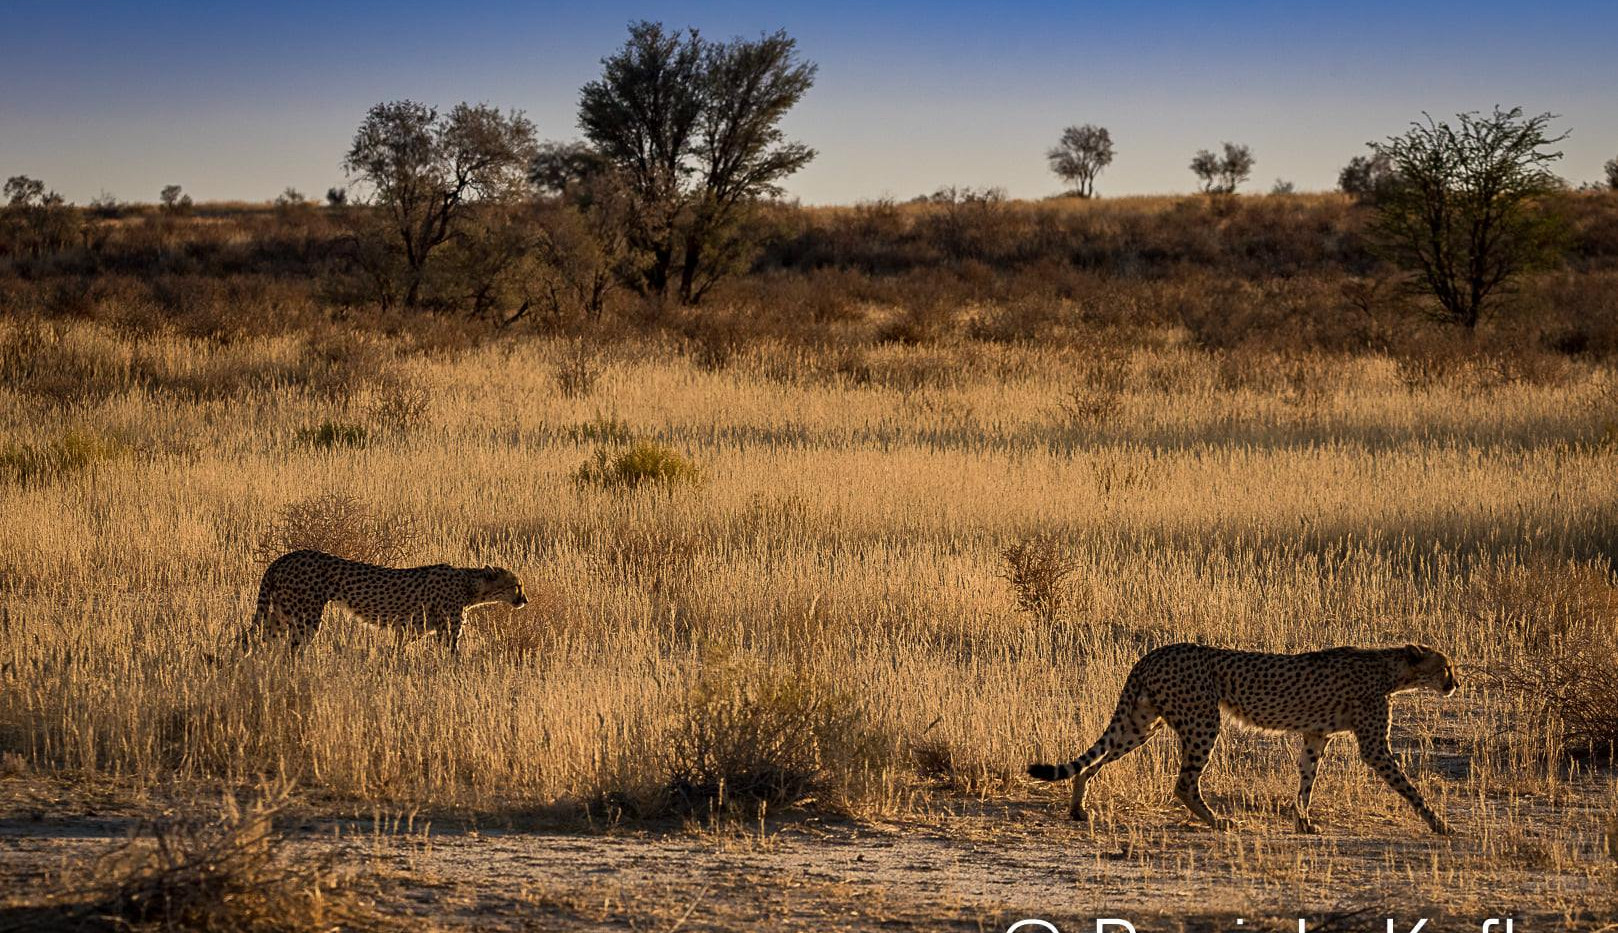 Cheetahs on the move